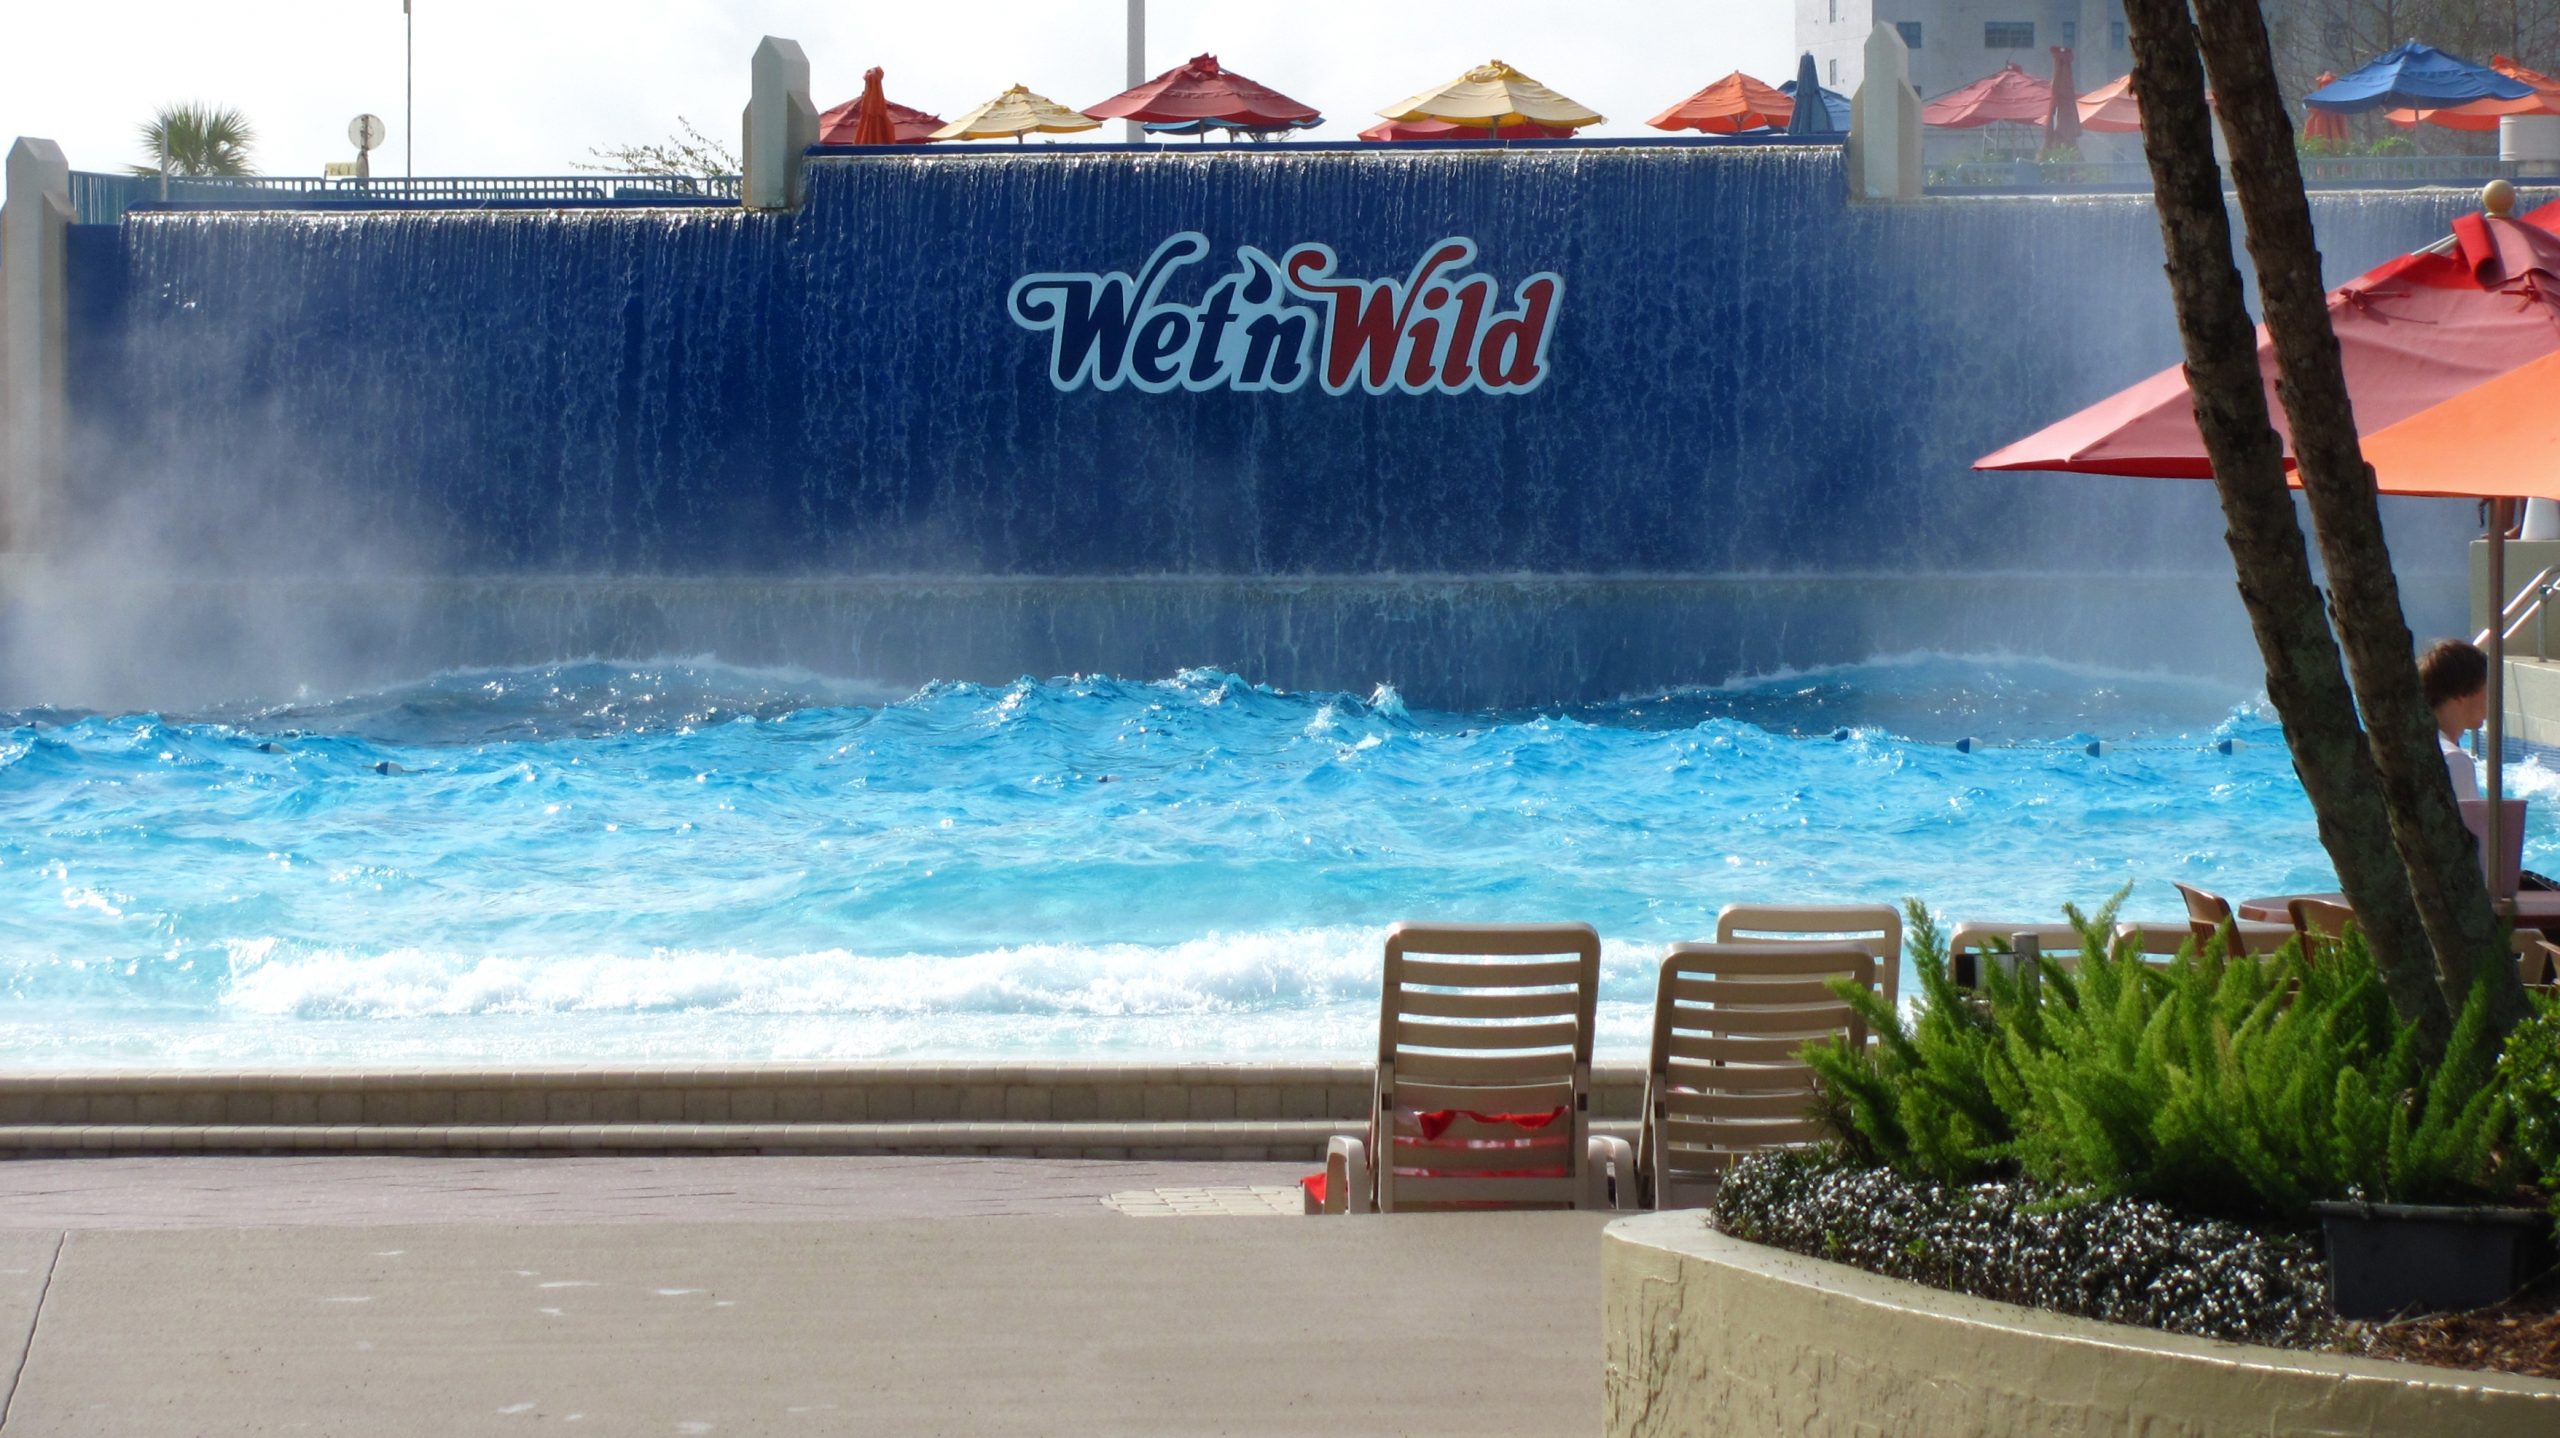 Amazing Theme Park In Orlando-Wet 'n' Wild